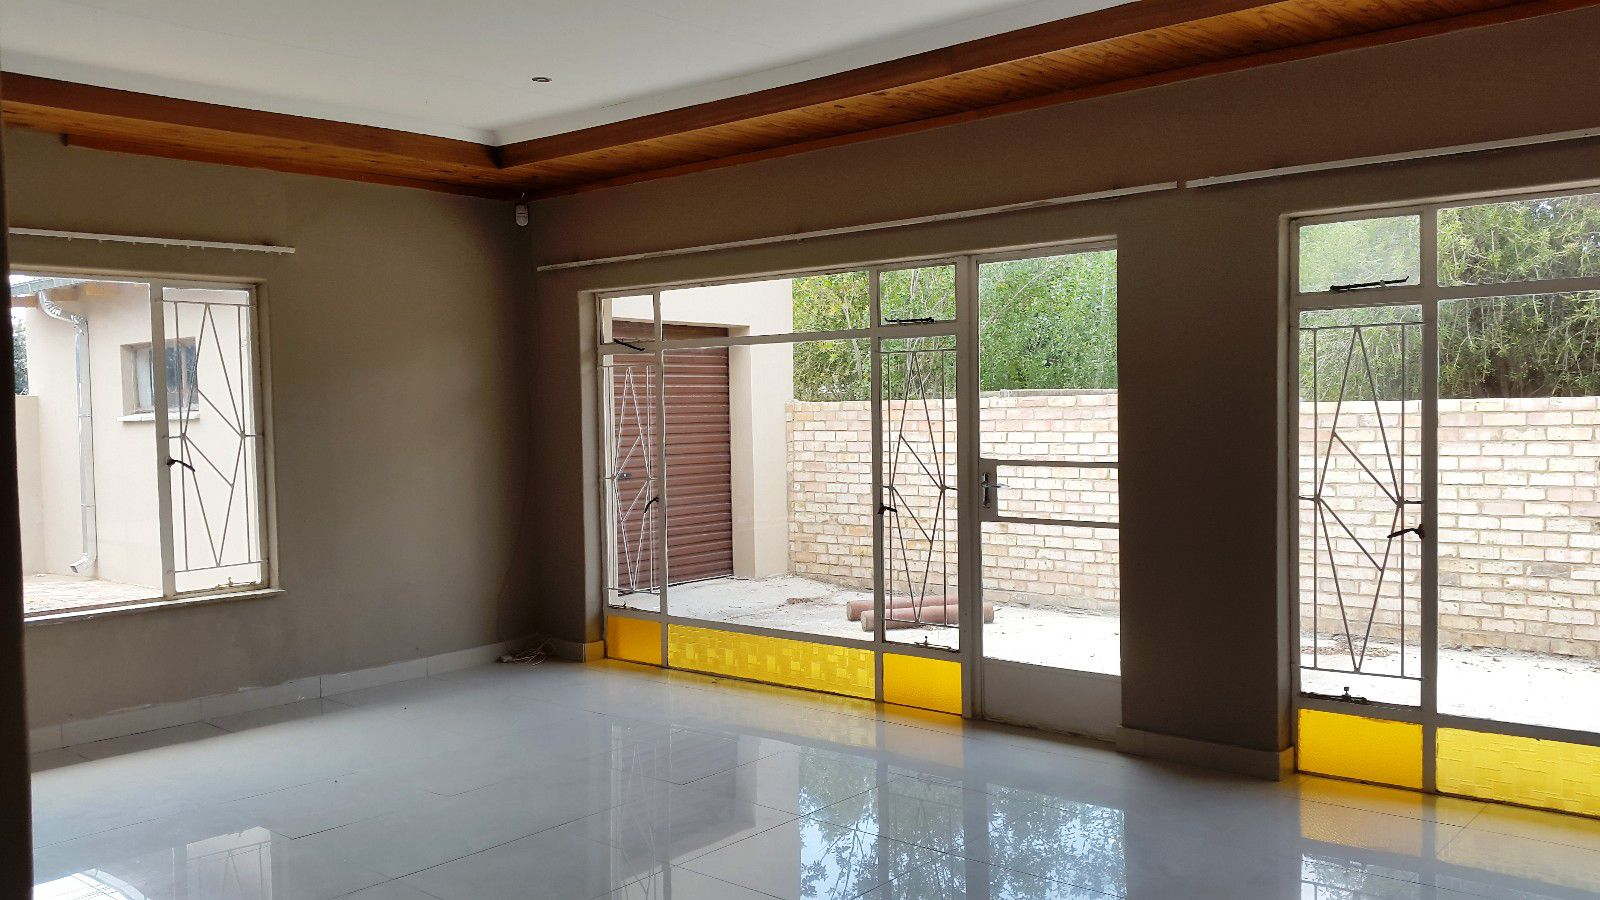 Potchefstroom Central property for sale. Ref No: 13410360. Picture no 2